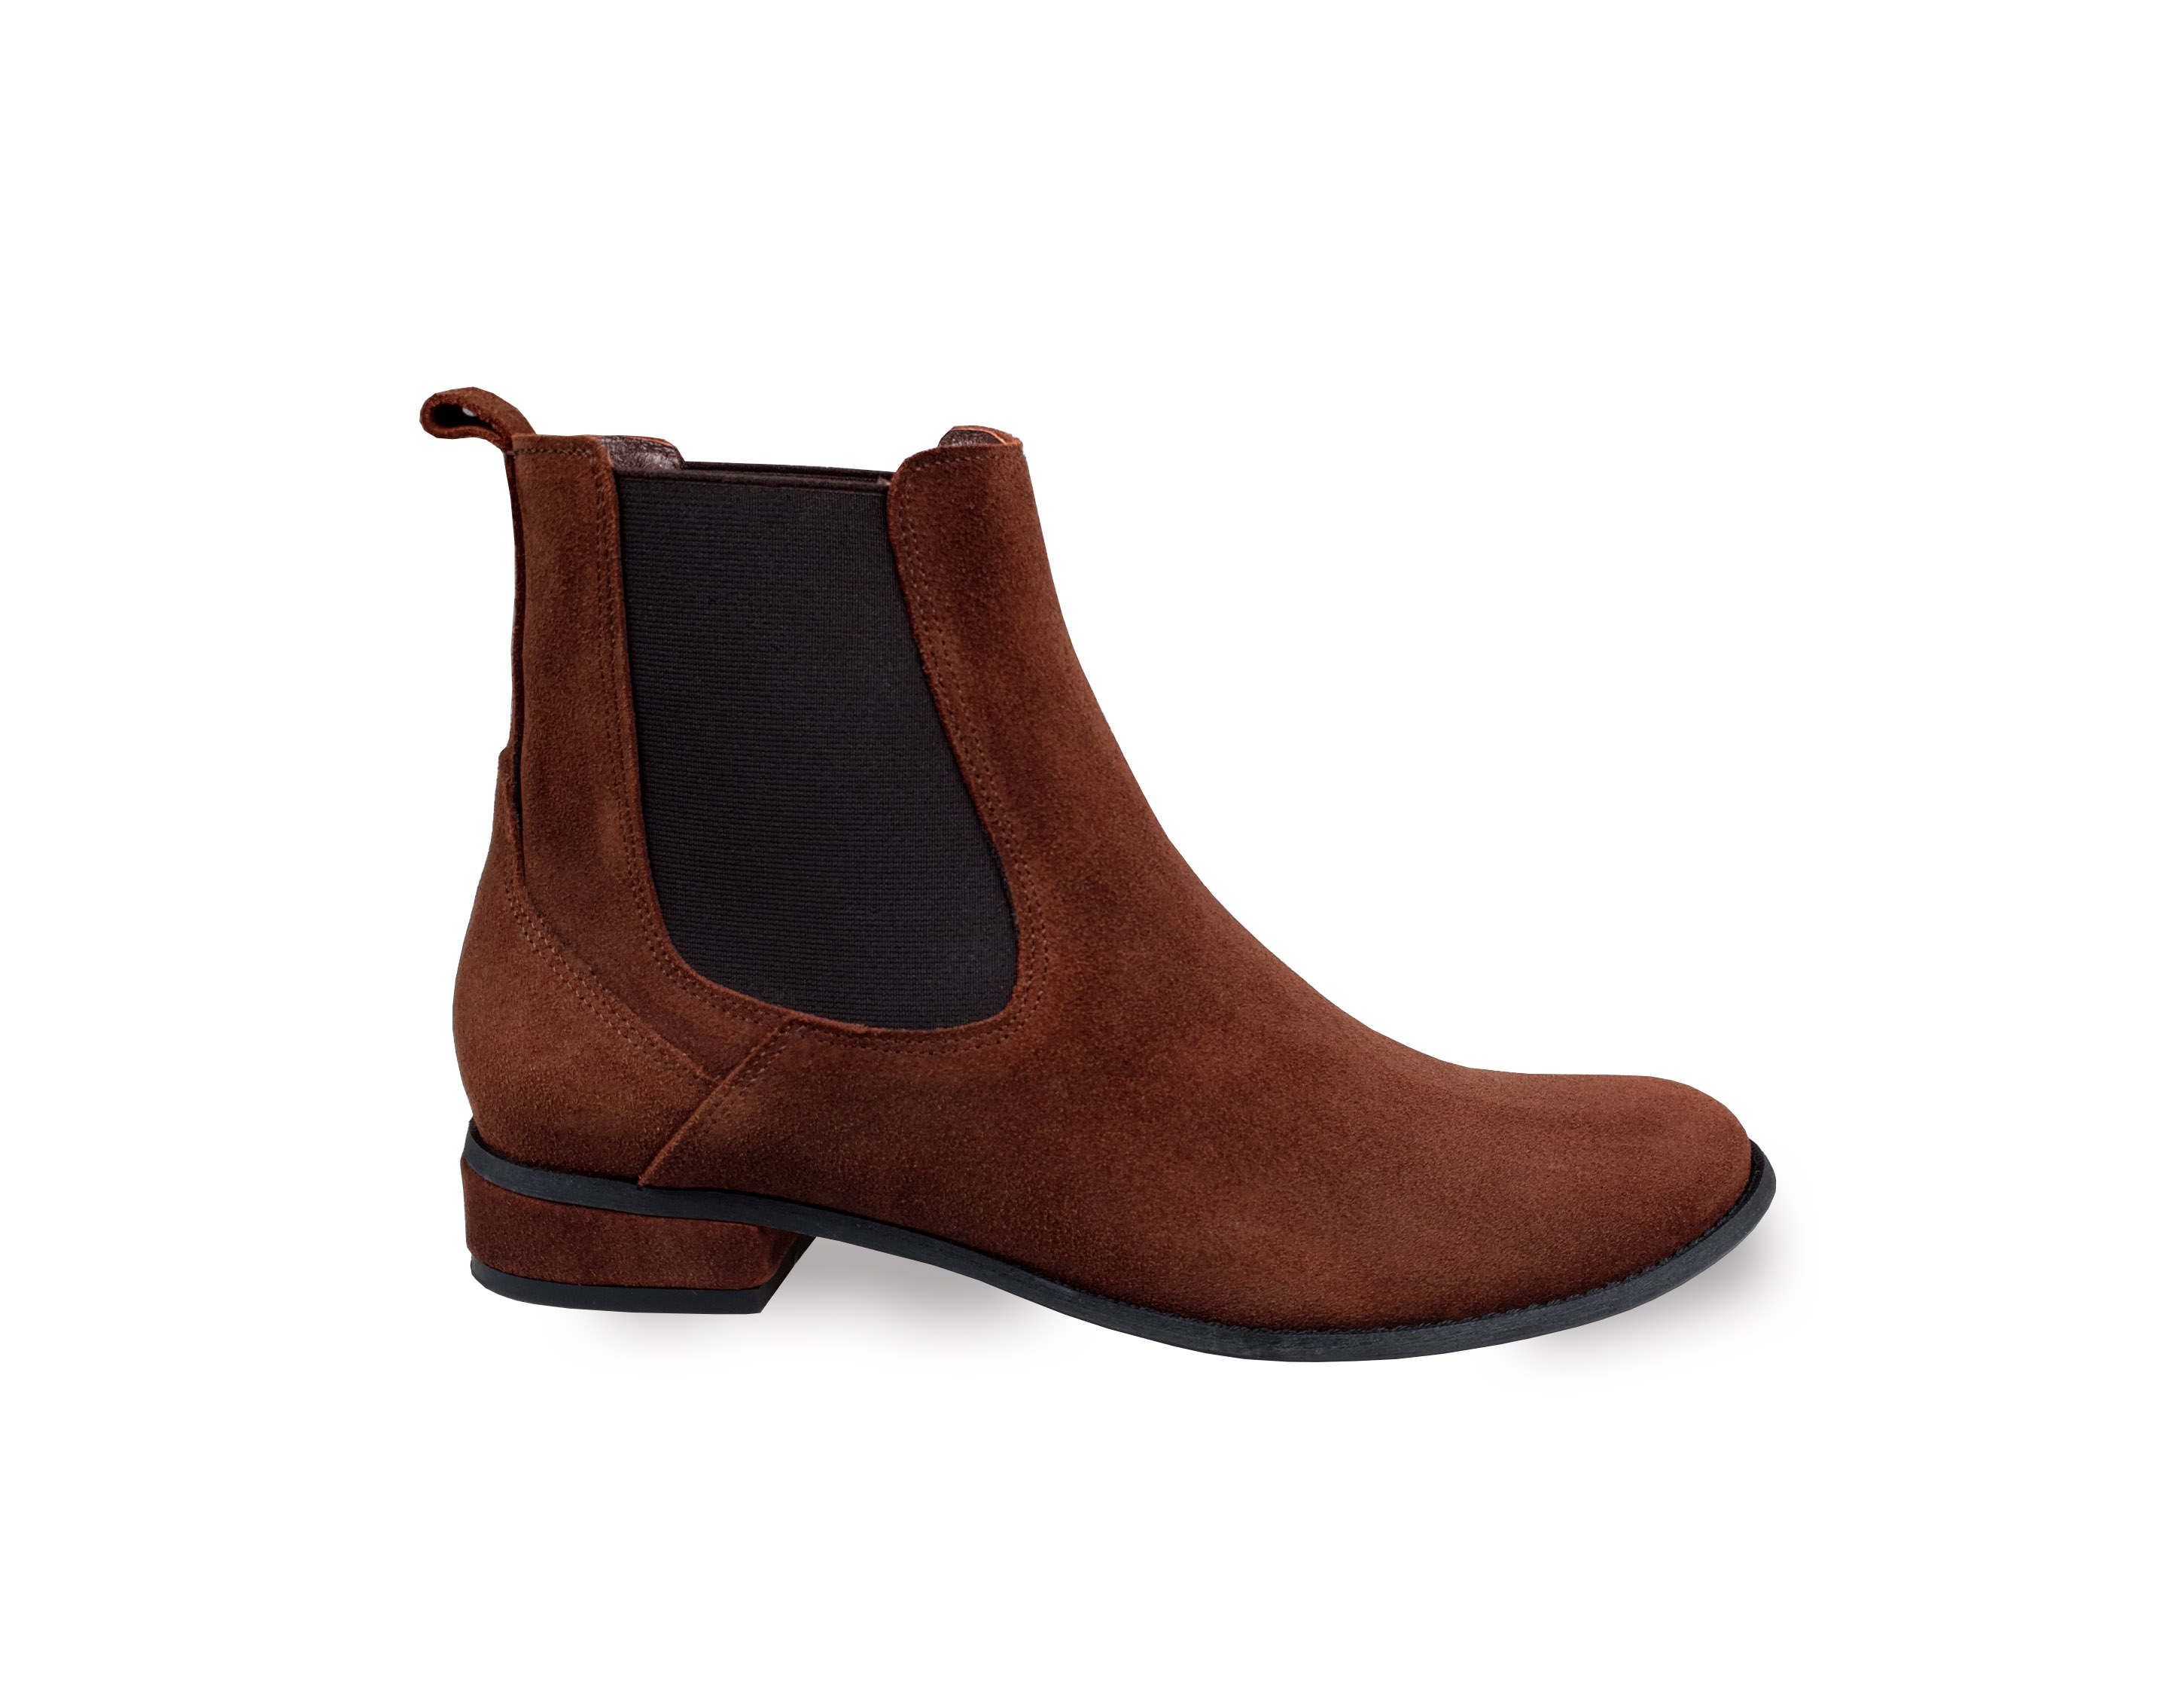 Casey brown suede ankle boots